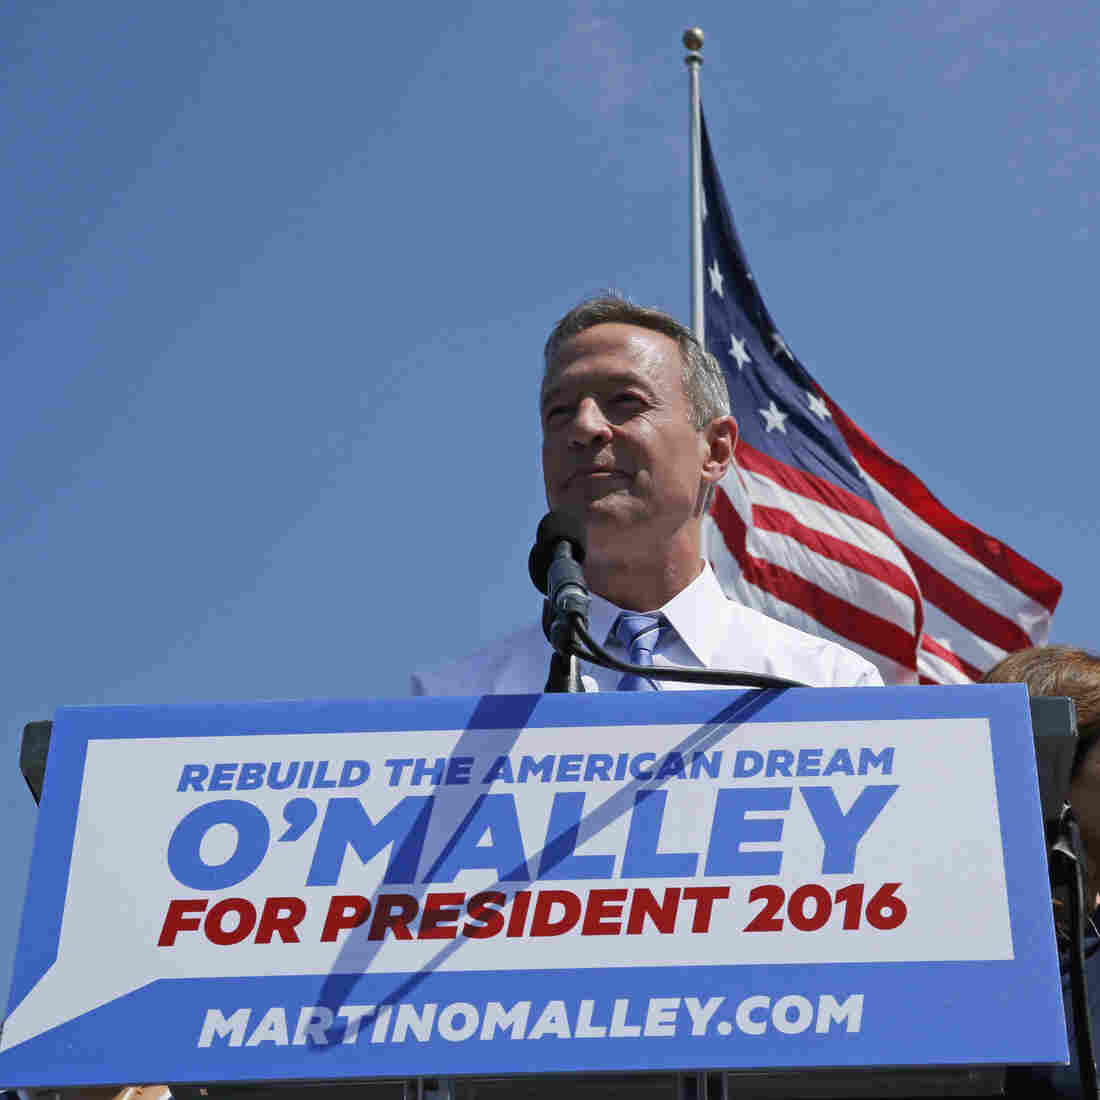 Former Maryland Gov. Martin O'Malley as he announces his intention to seek the Democratic presidential nomination during a speech in Federal Hill Park in Baltimore, Md.